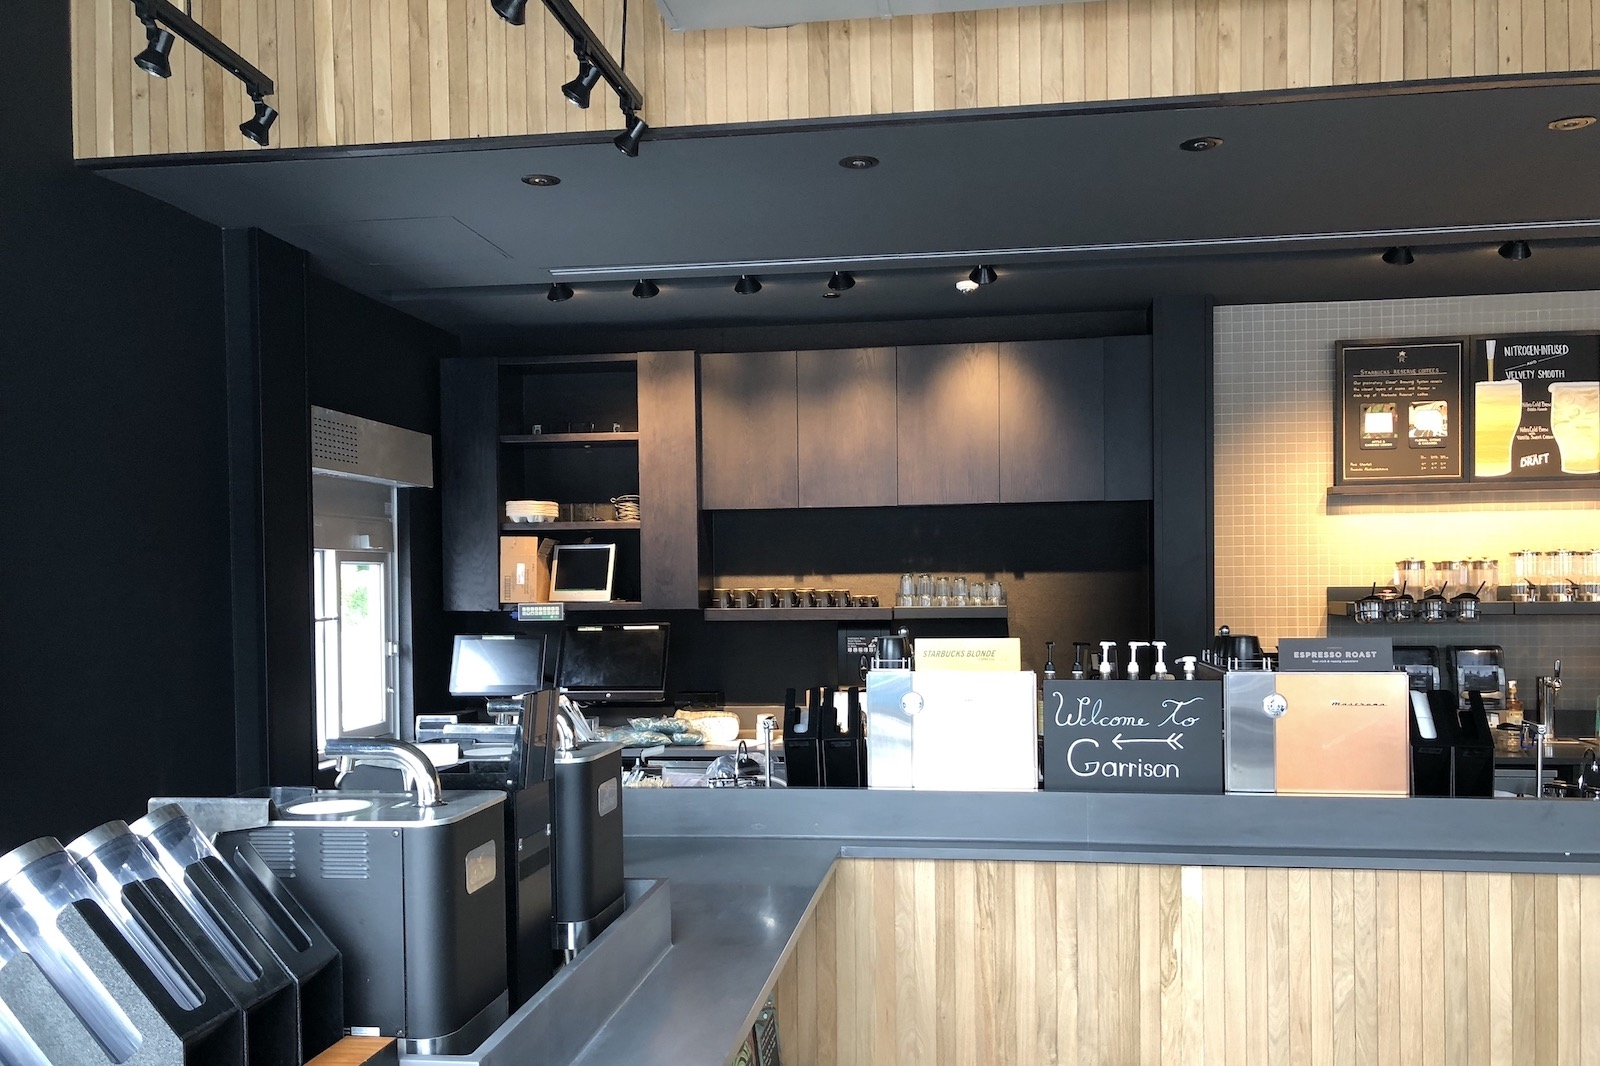 Completed Commercial Tenant Improvement project by Outline Millwork for Starbucks at Garrison Crossing in Chilliwack, BC featuring custom commercial millwork, custom cabinetry & woodworking.